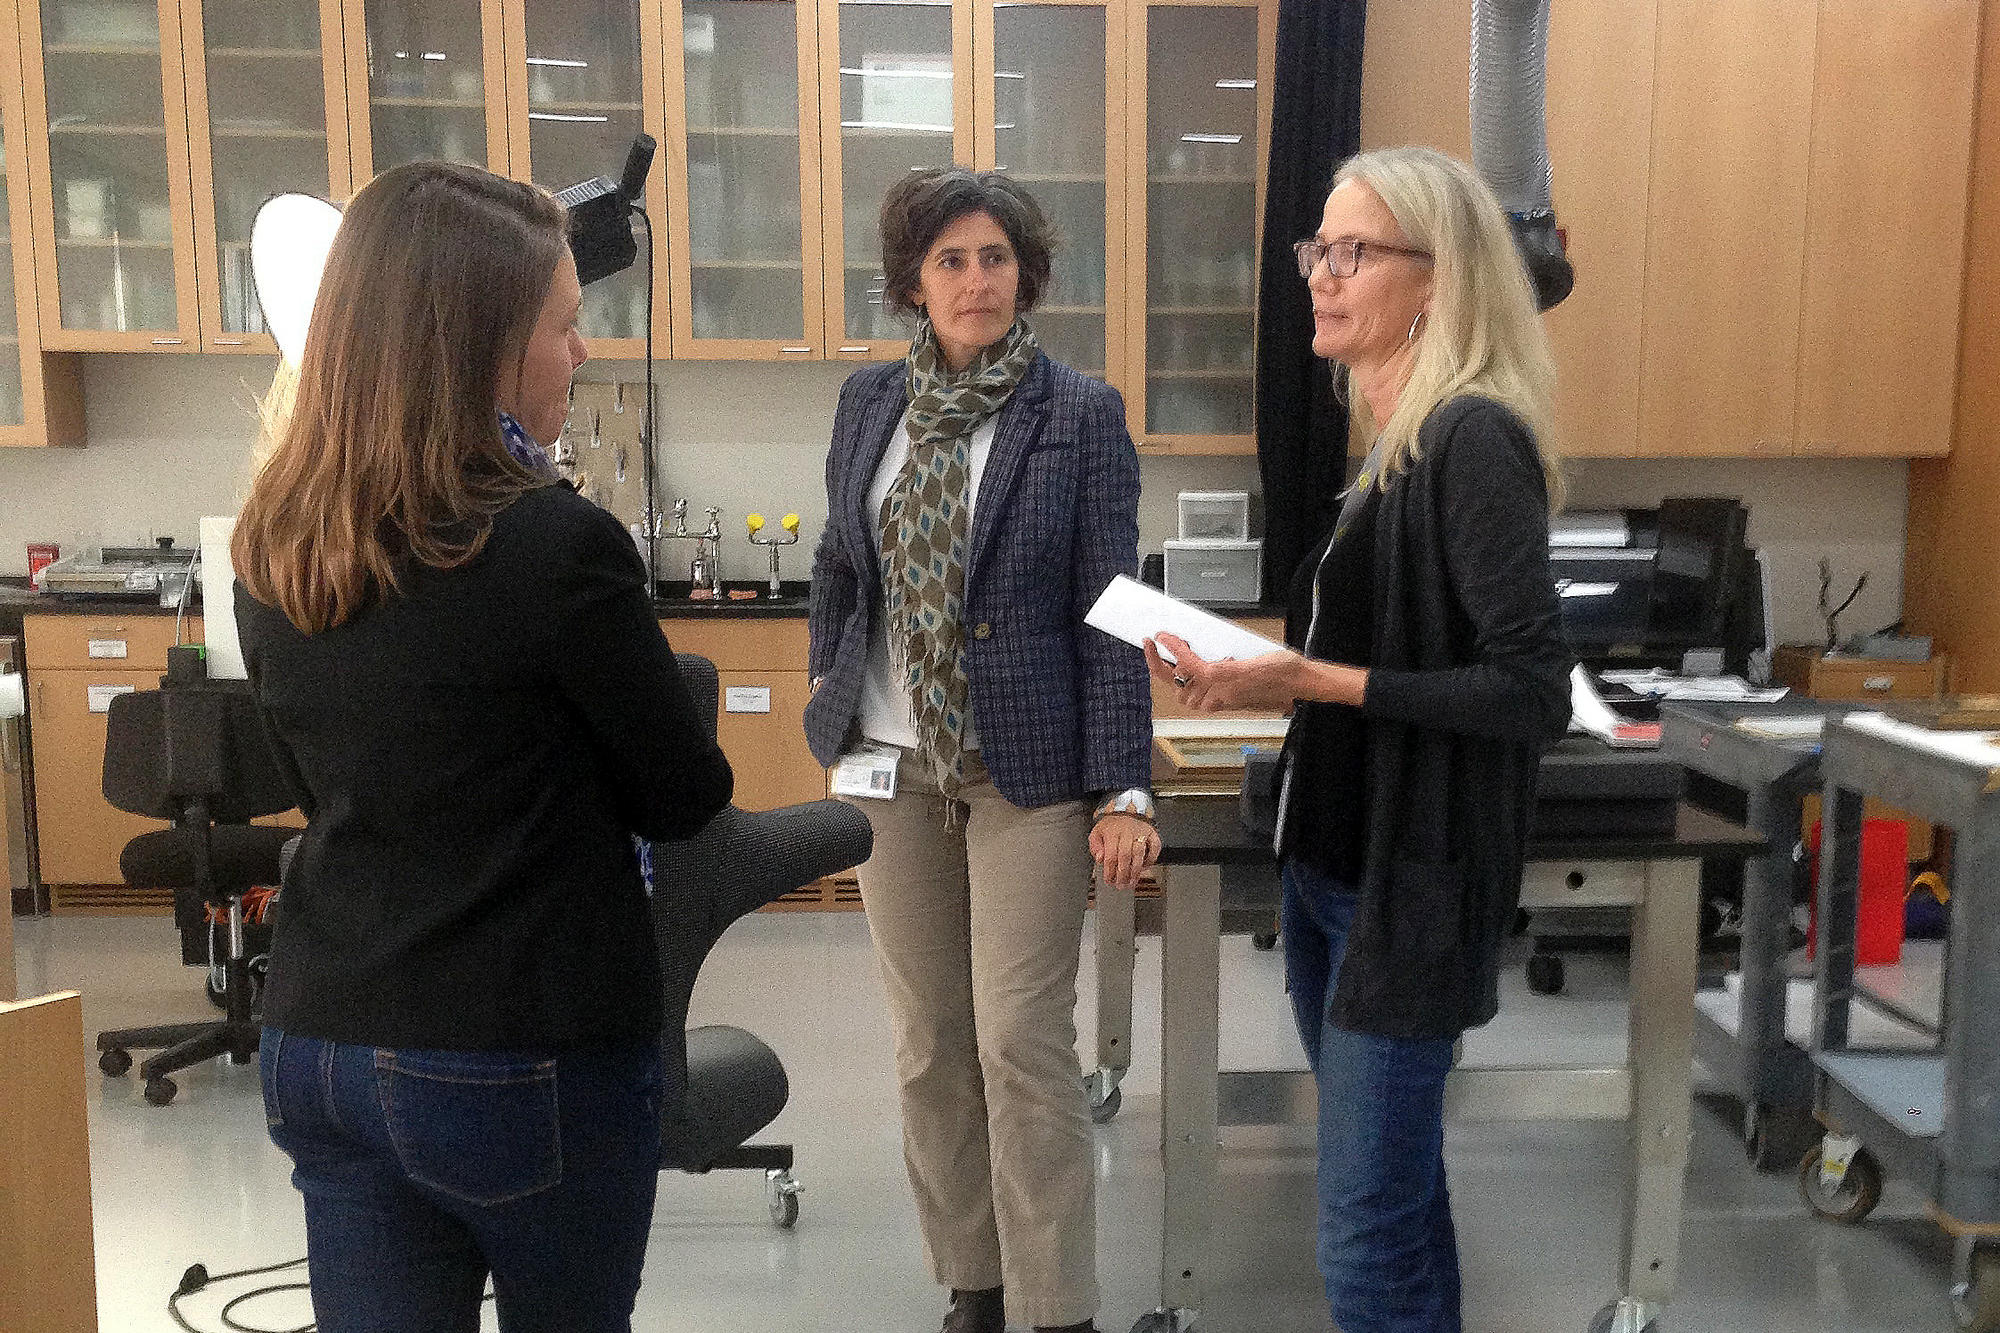 Rachel Perry's visit to the object conservation lab, 2014